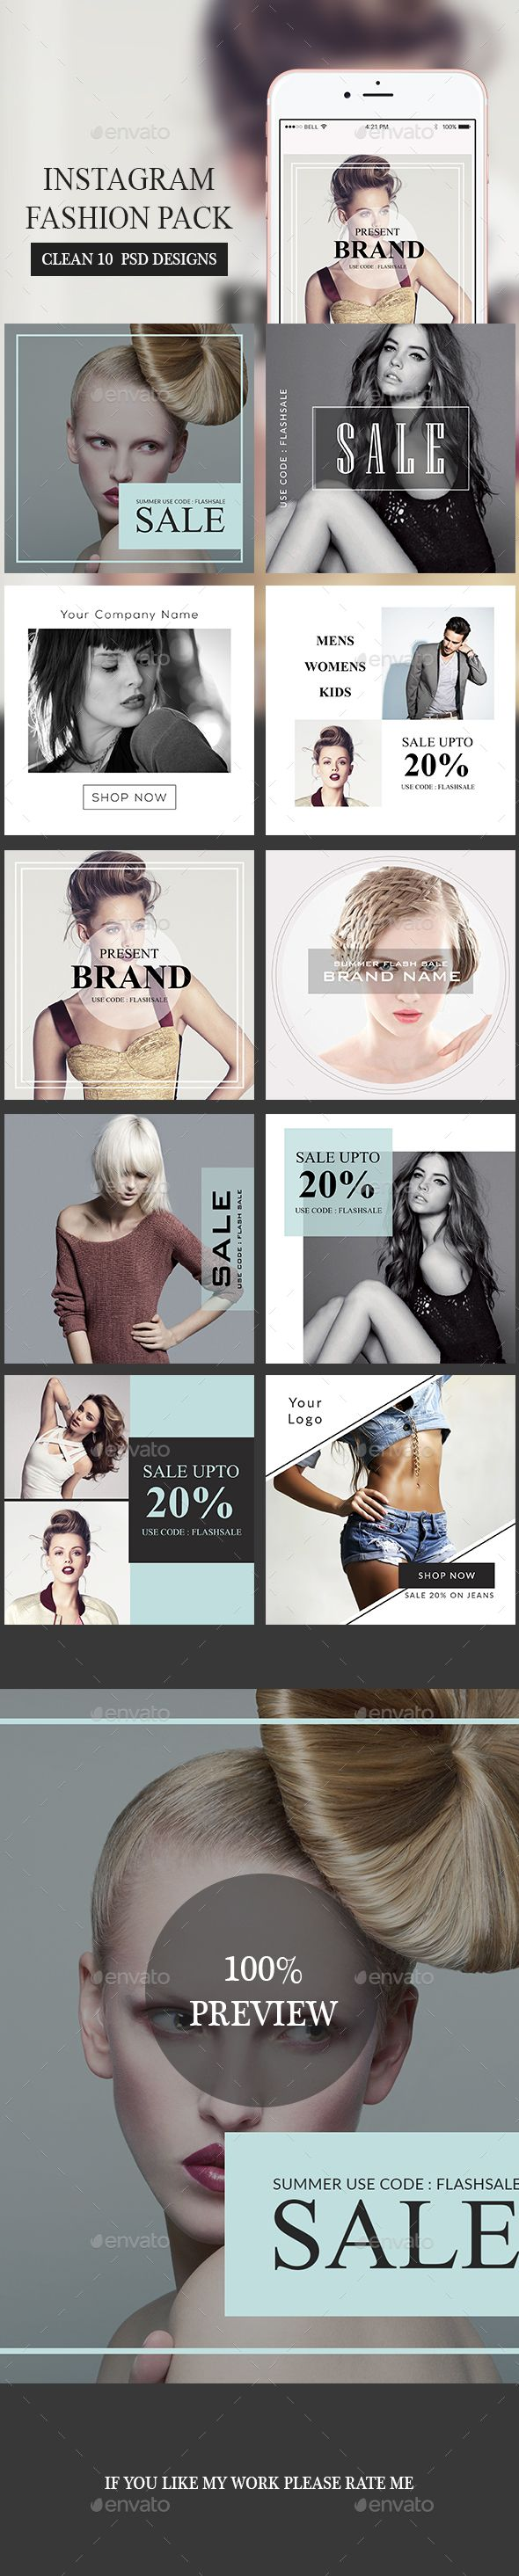 Fashion Instagram Banner Templates PSD. Download here: https://graphicriver.net/item/fashion-instagram-banners/17537745?ref=ksioks